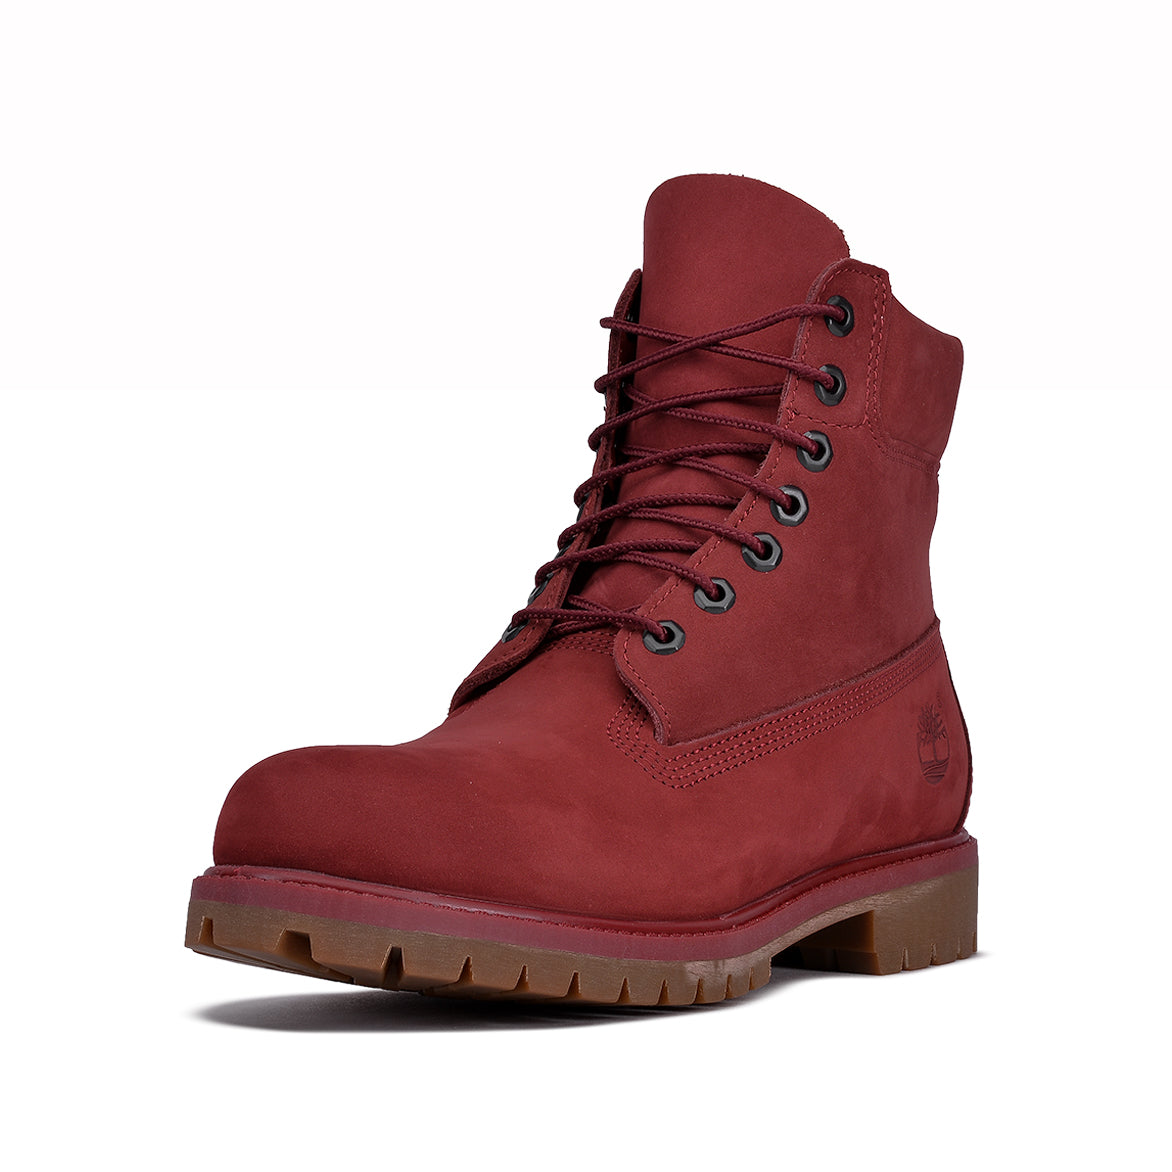 WATERPROOF 6 INCH PREMIUM BOOT - BURGUNDY